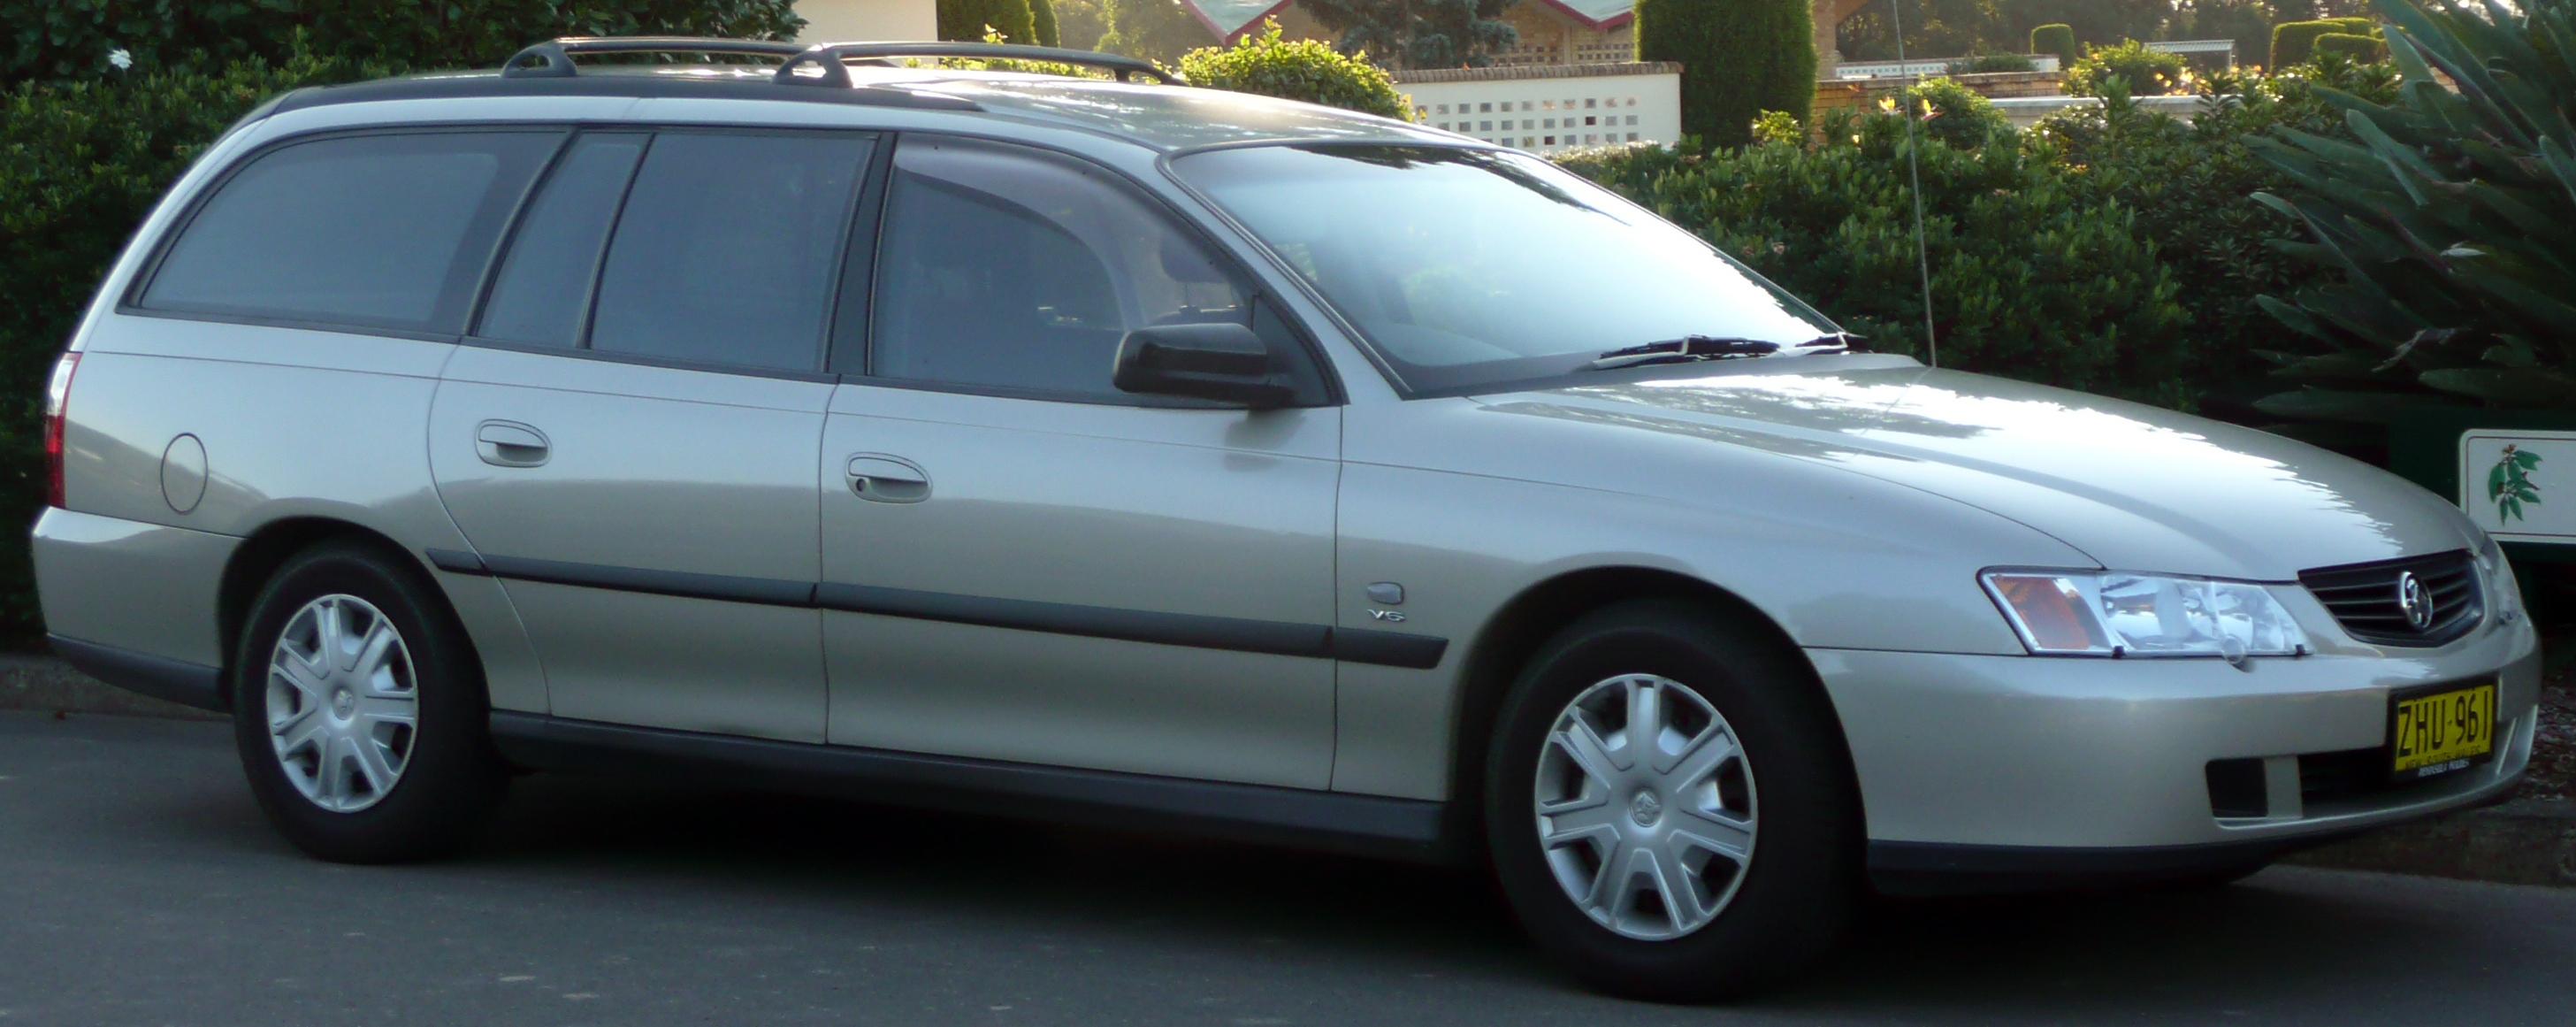 2003 holden vy commodore executive images hd cars wallpaper 2003 holden vy commodore executive choice image hd cars wallpaper 2003 holden vy commodore executive gallery hd cars wallpaper 2003 holden vy commodore vanachro Gallery